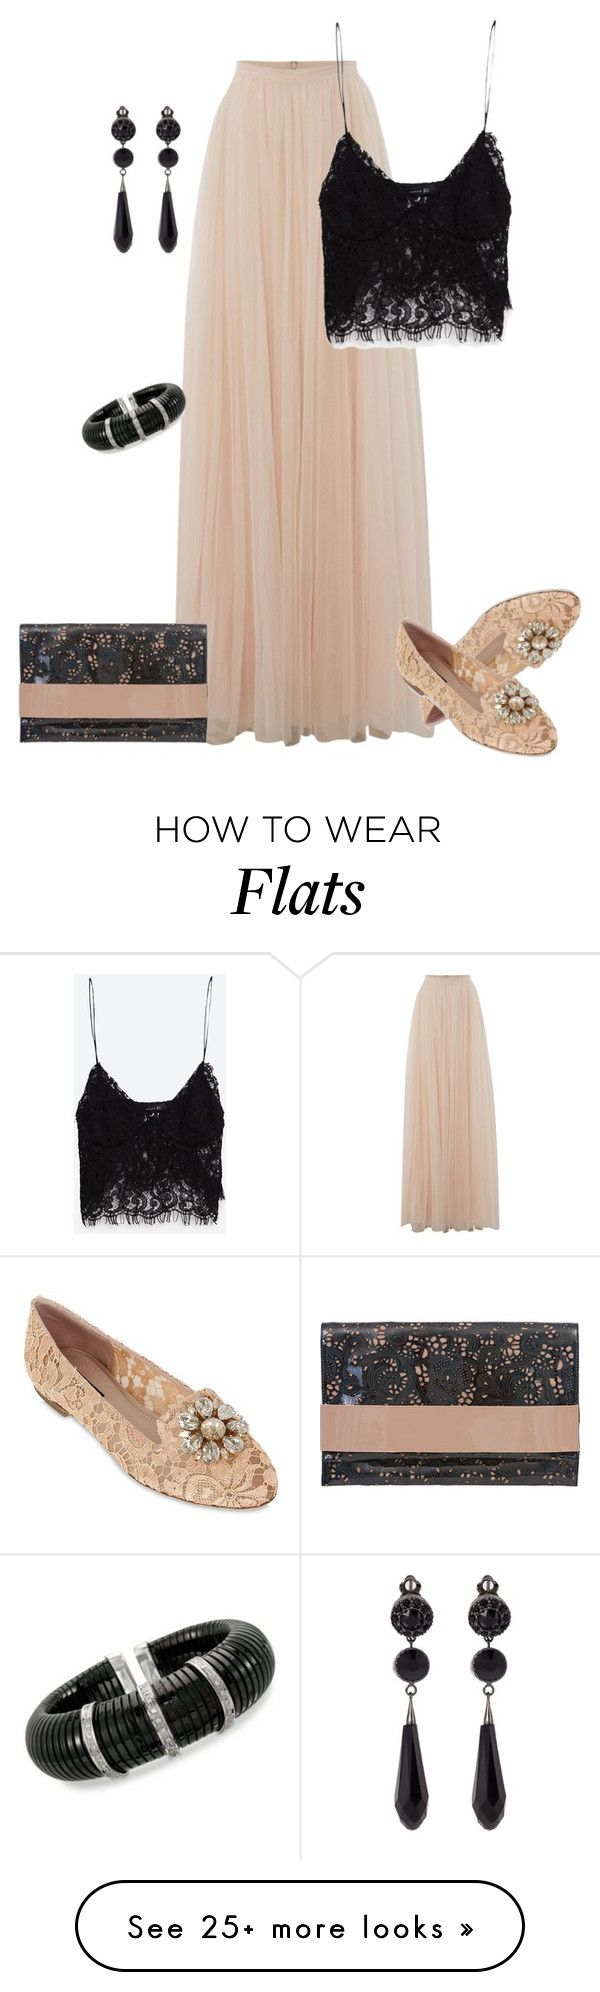 """""""outfit 3486"""" by natalyag on Polyvore featuring мода, Needle & Thread, Dolce&Gabbana, BUCO, Zara, Givenchy и Ross-Simons"""